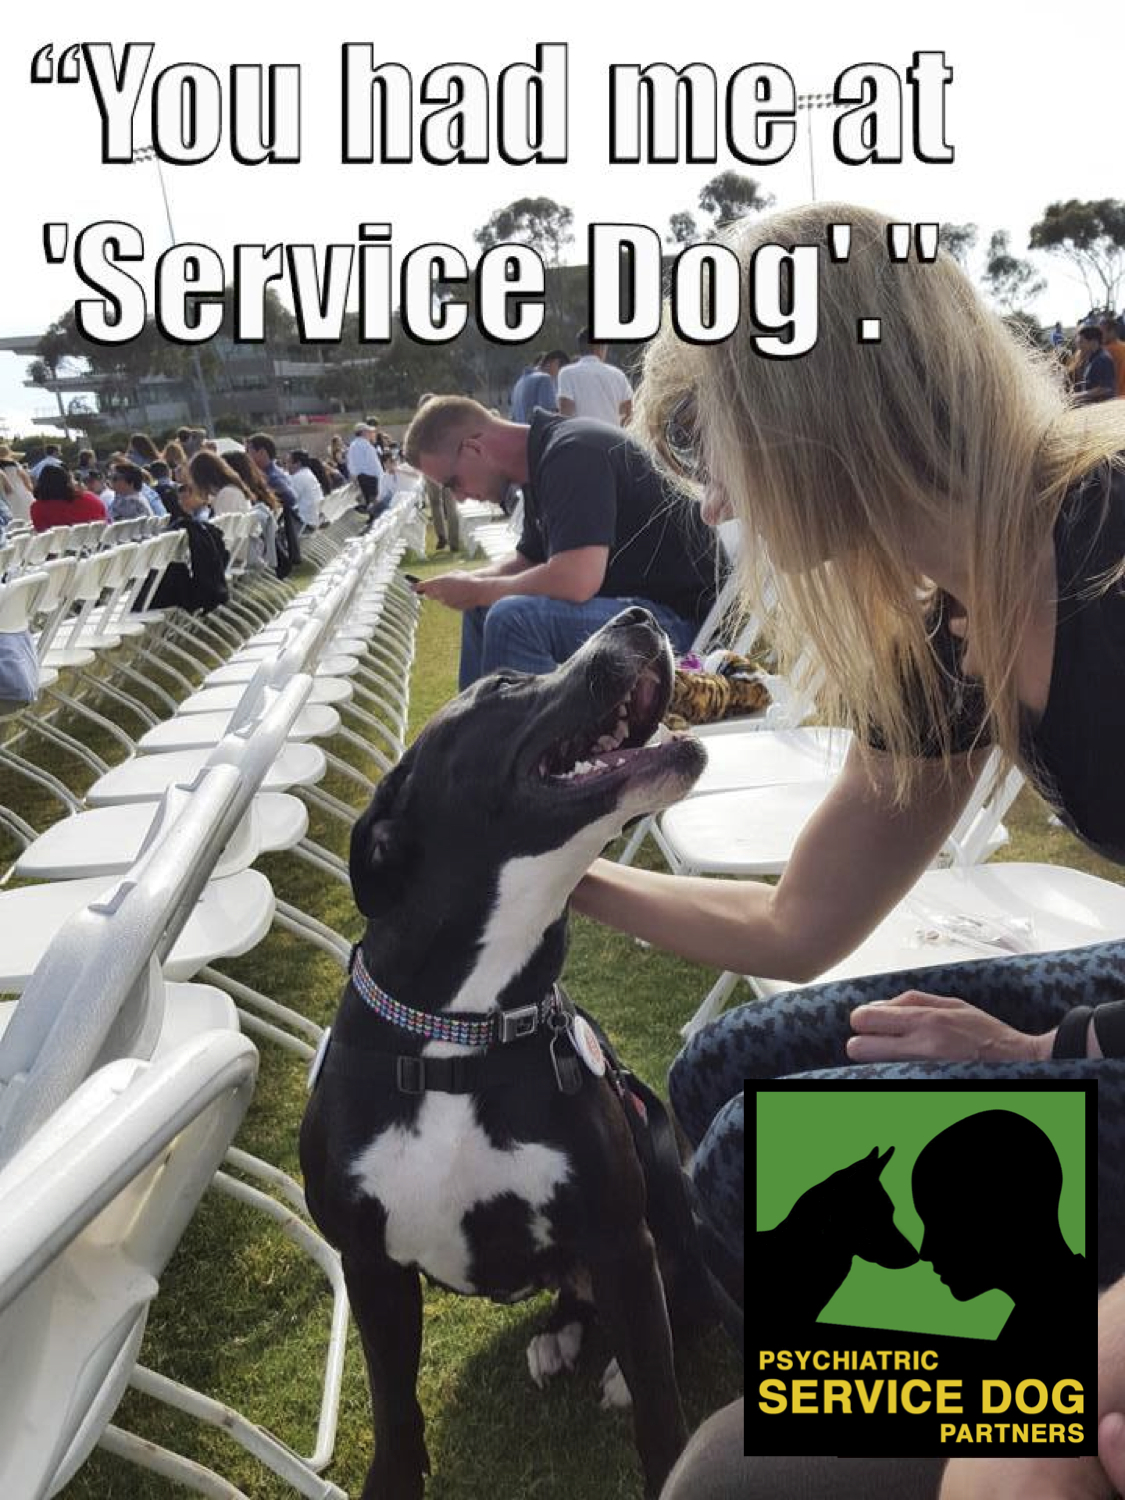 Can You Get A Service Dog For Free